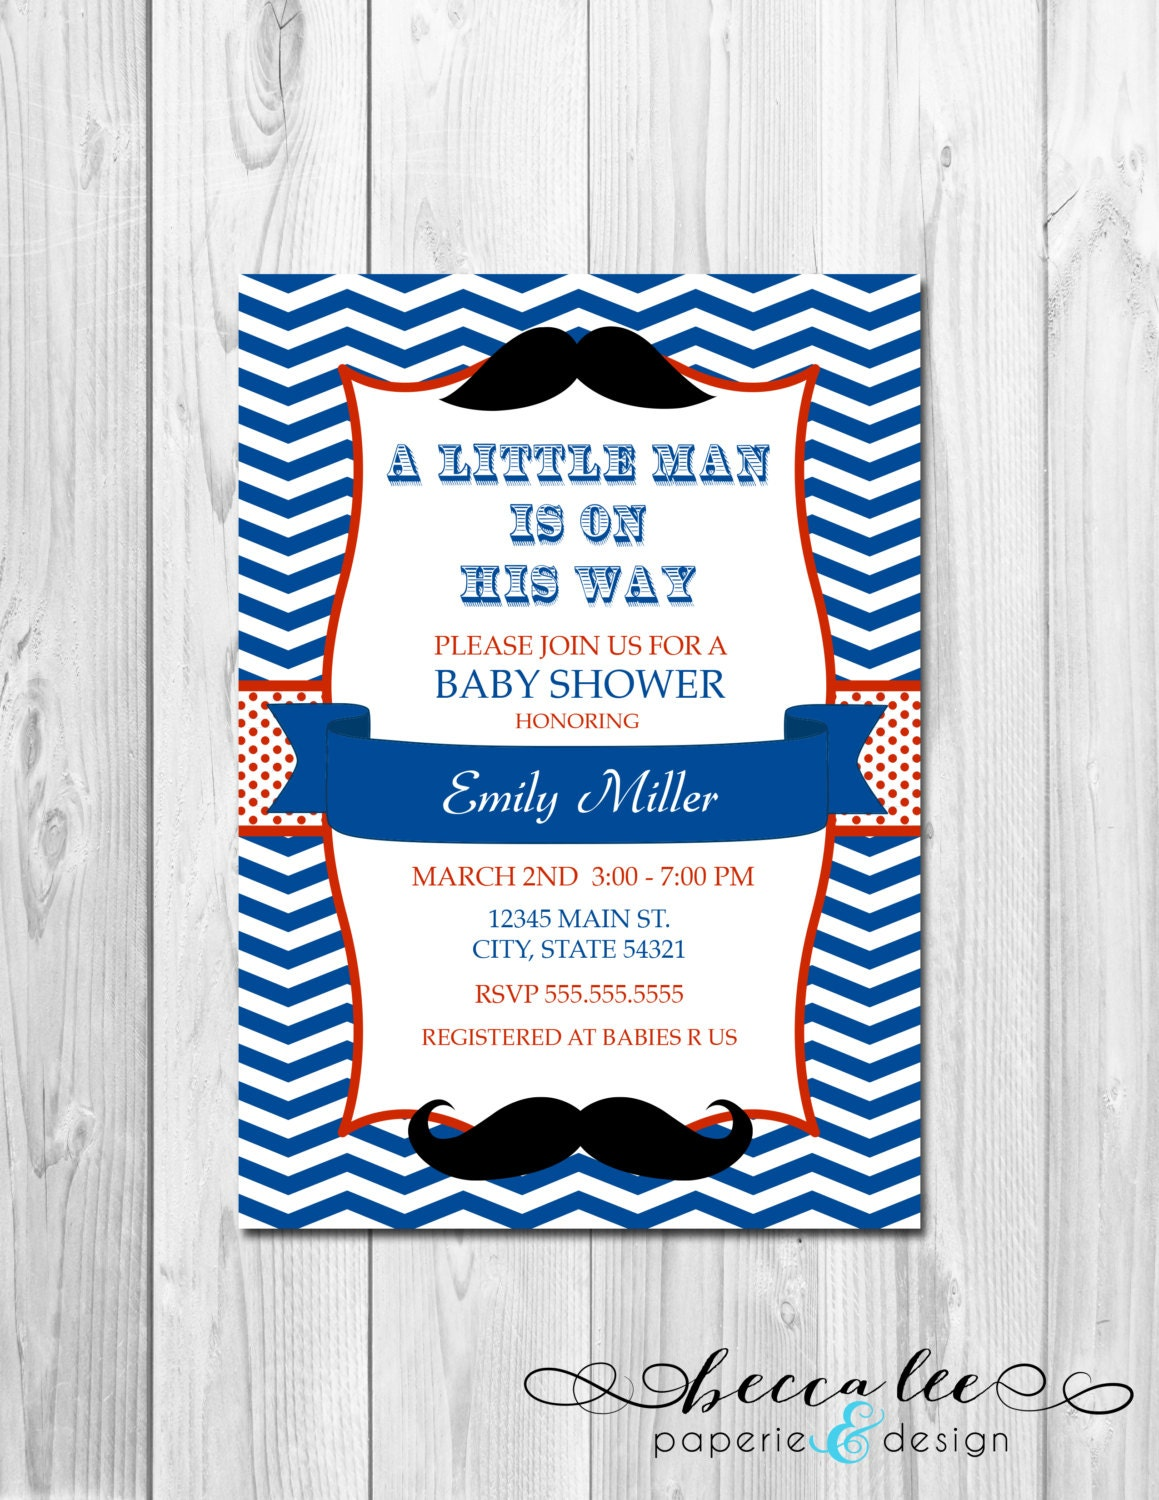 little man mustache baby shower invitation chevron stripes diy